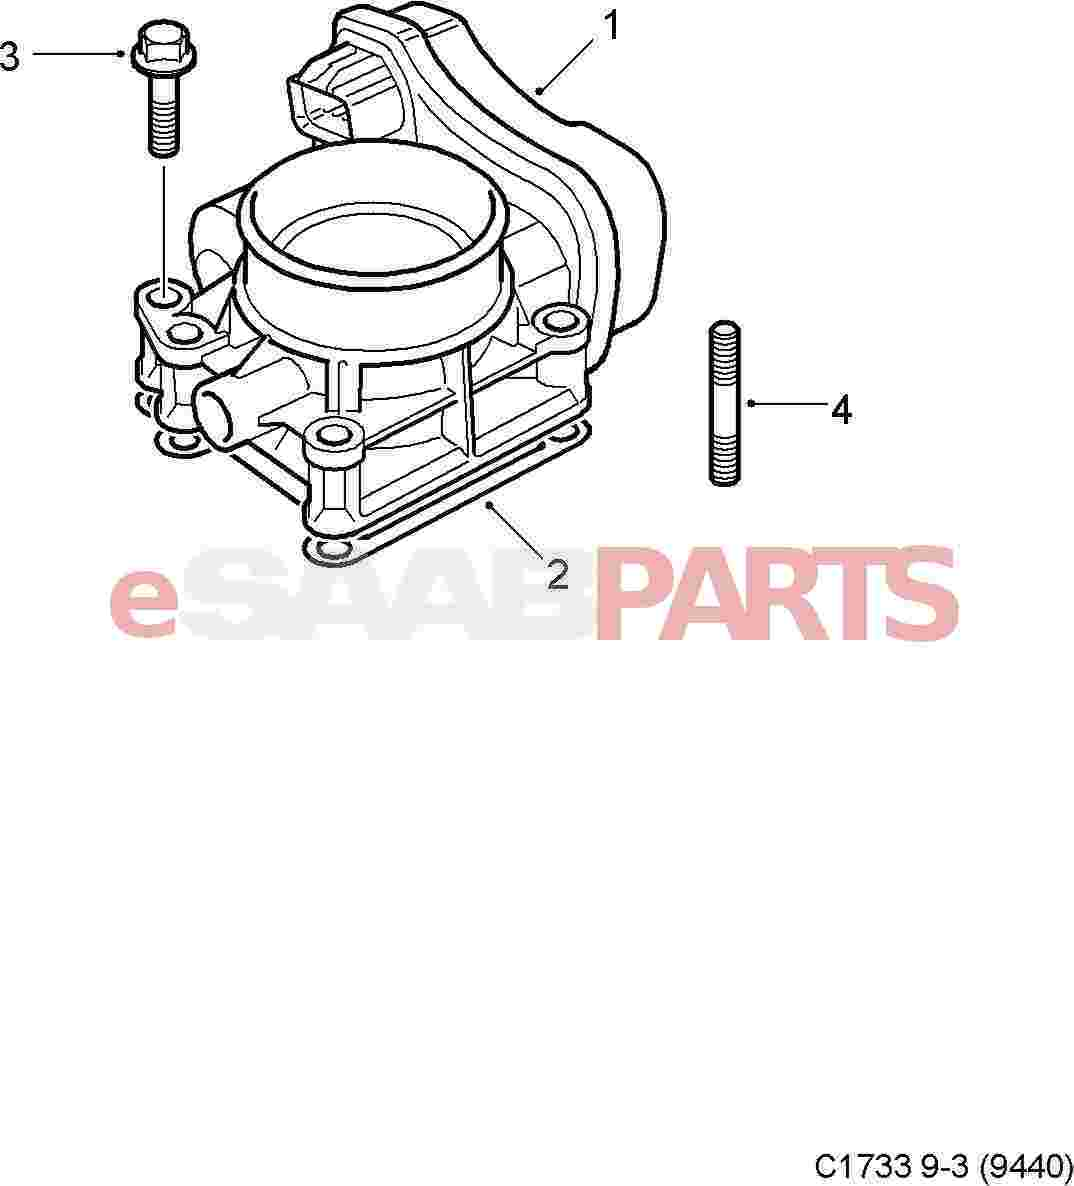 Saab 9 3 Suspension Parts Diagram Wiring Diagram For Free